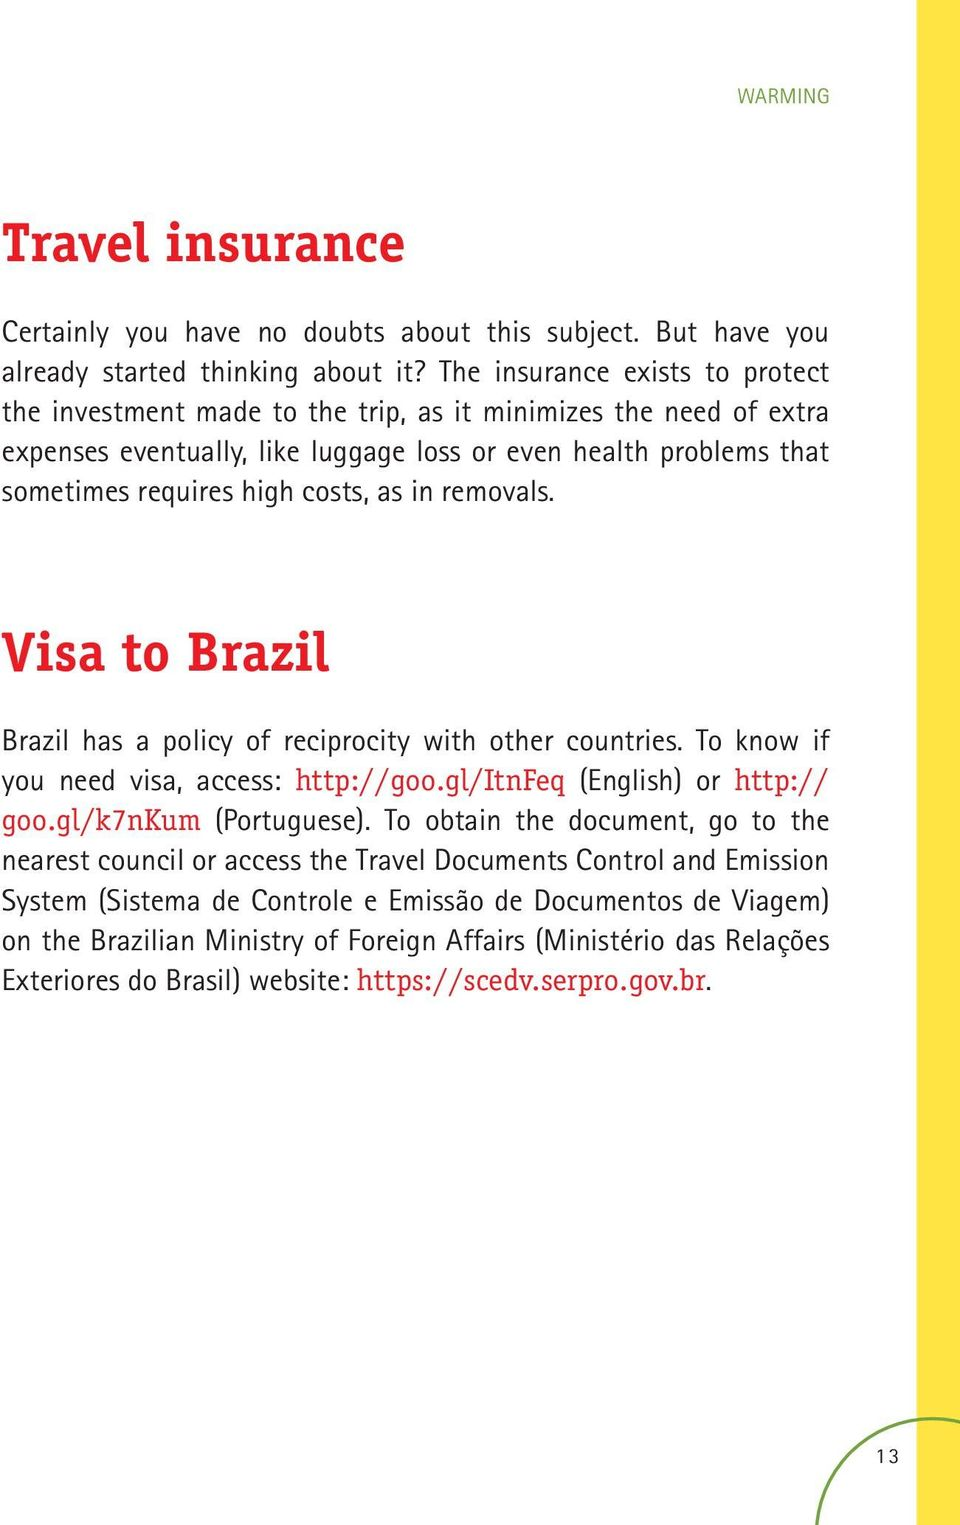 as in removals. Visa to Brazil Brazil has a policy of reciprocity with other countries. To know if you need visa, access: http://goo.gl/itnfeq (English) or http:// goo.gl/k7nkum (Portuguese).